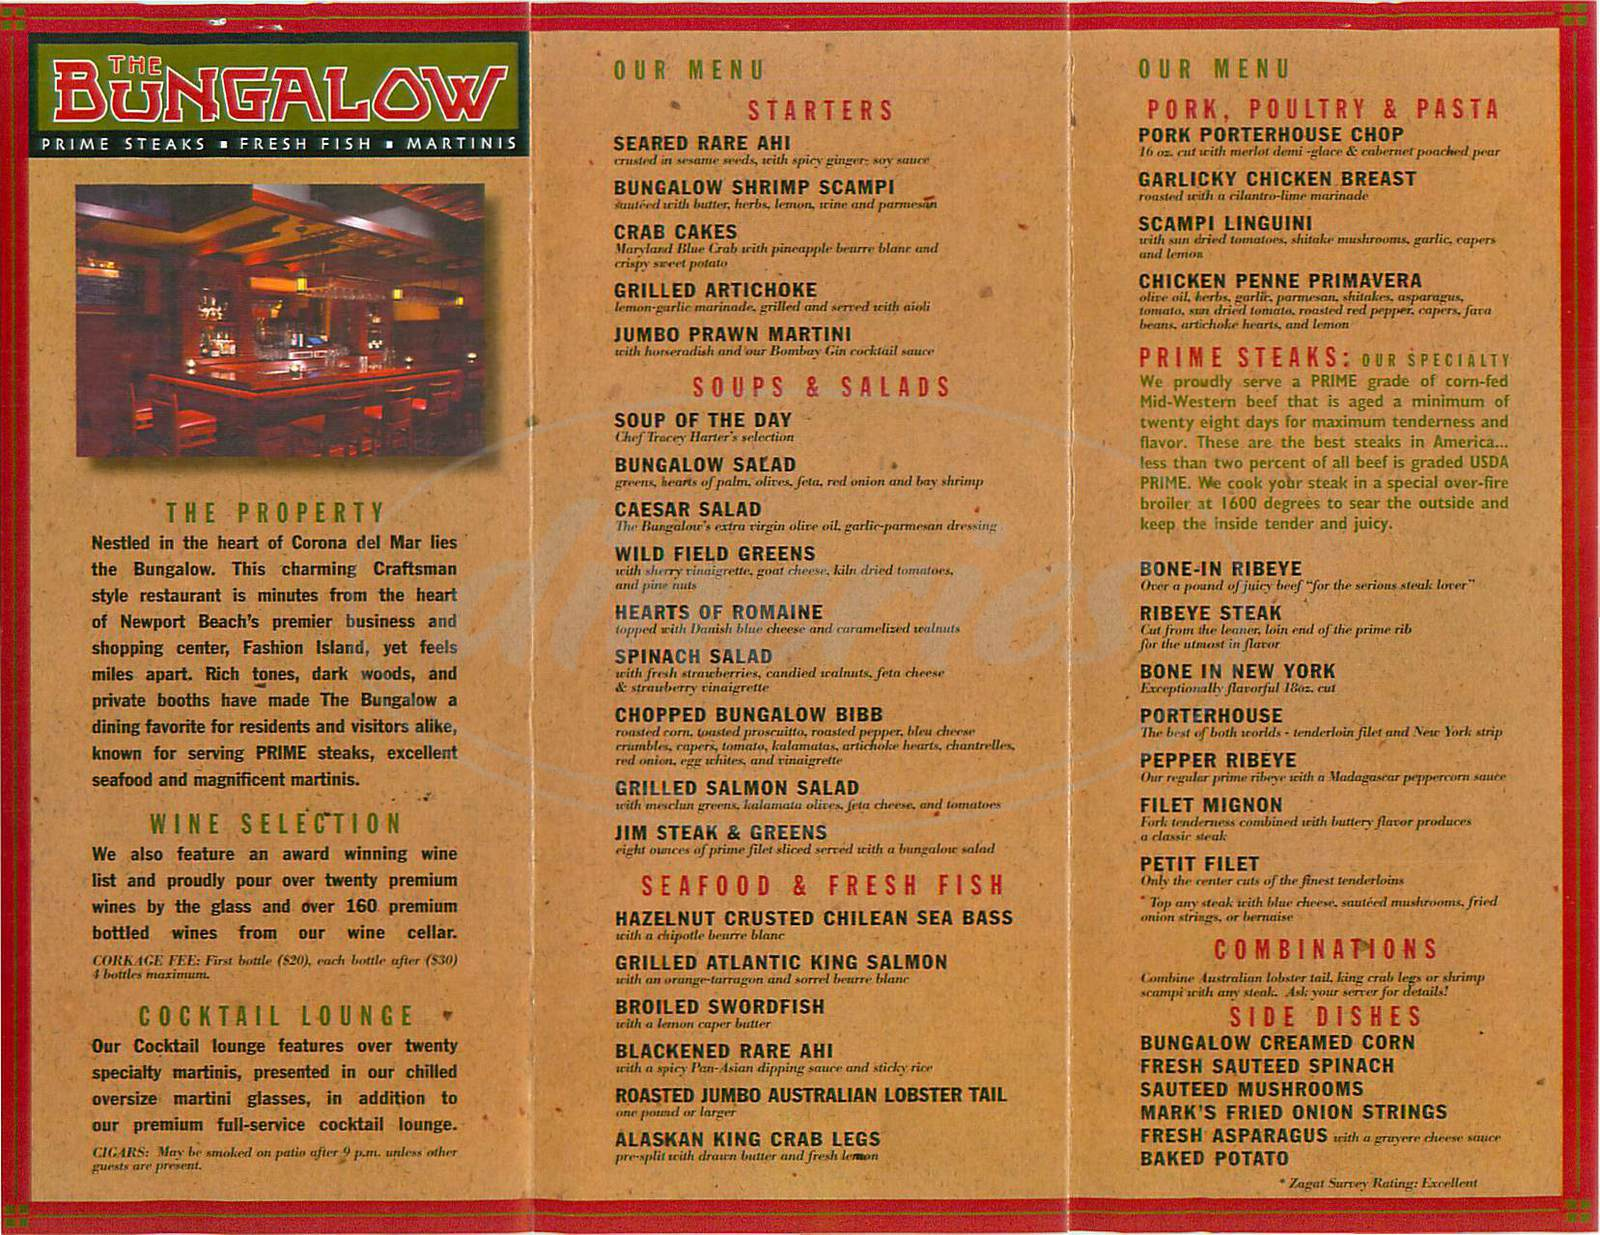 menu for The Bungalow Restaurant